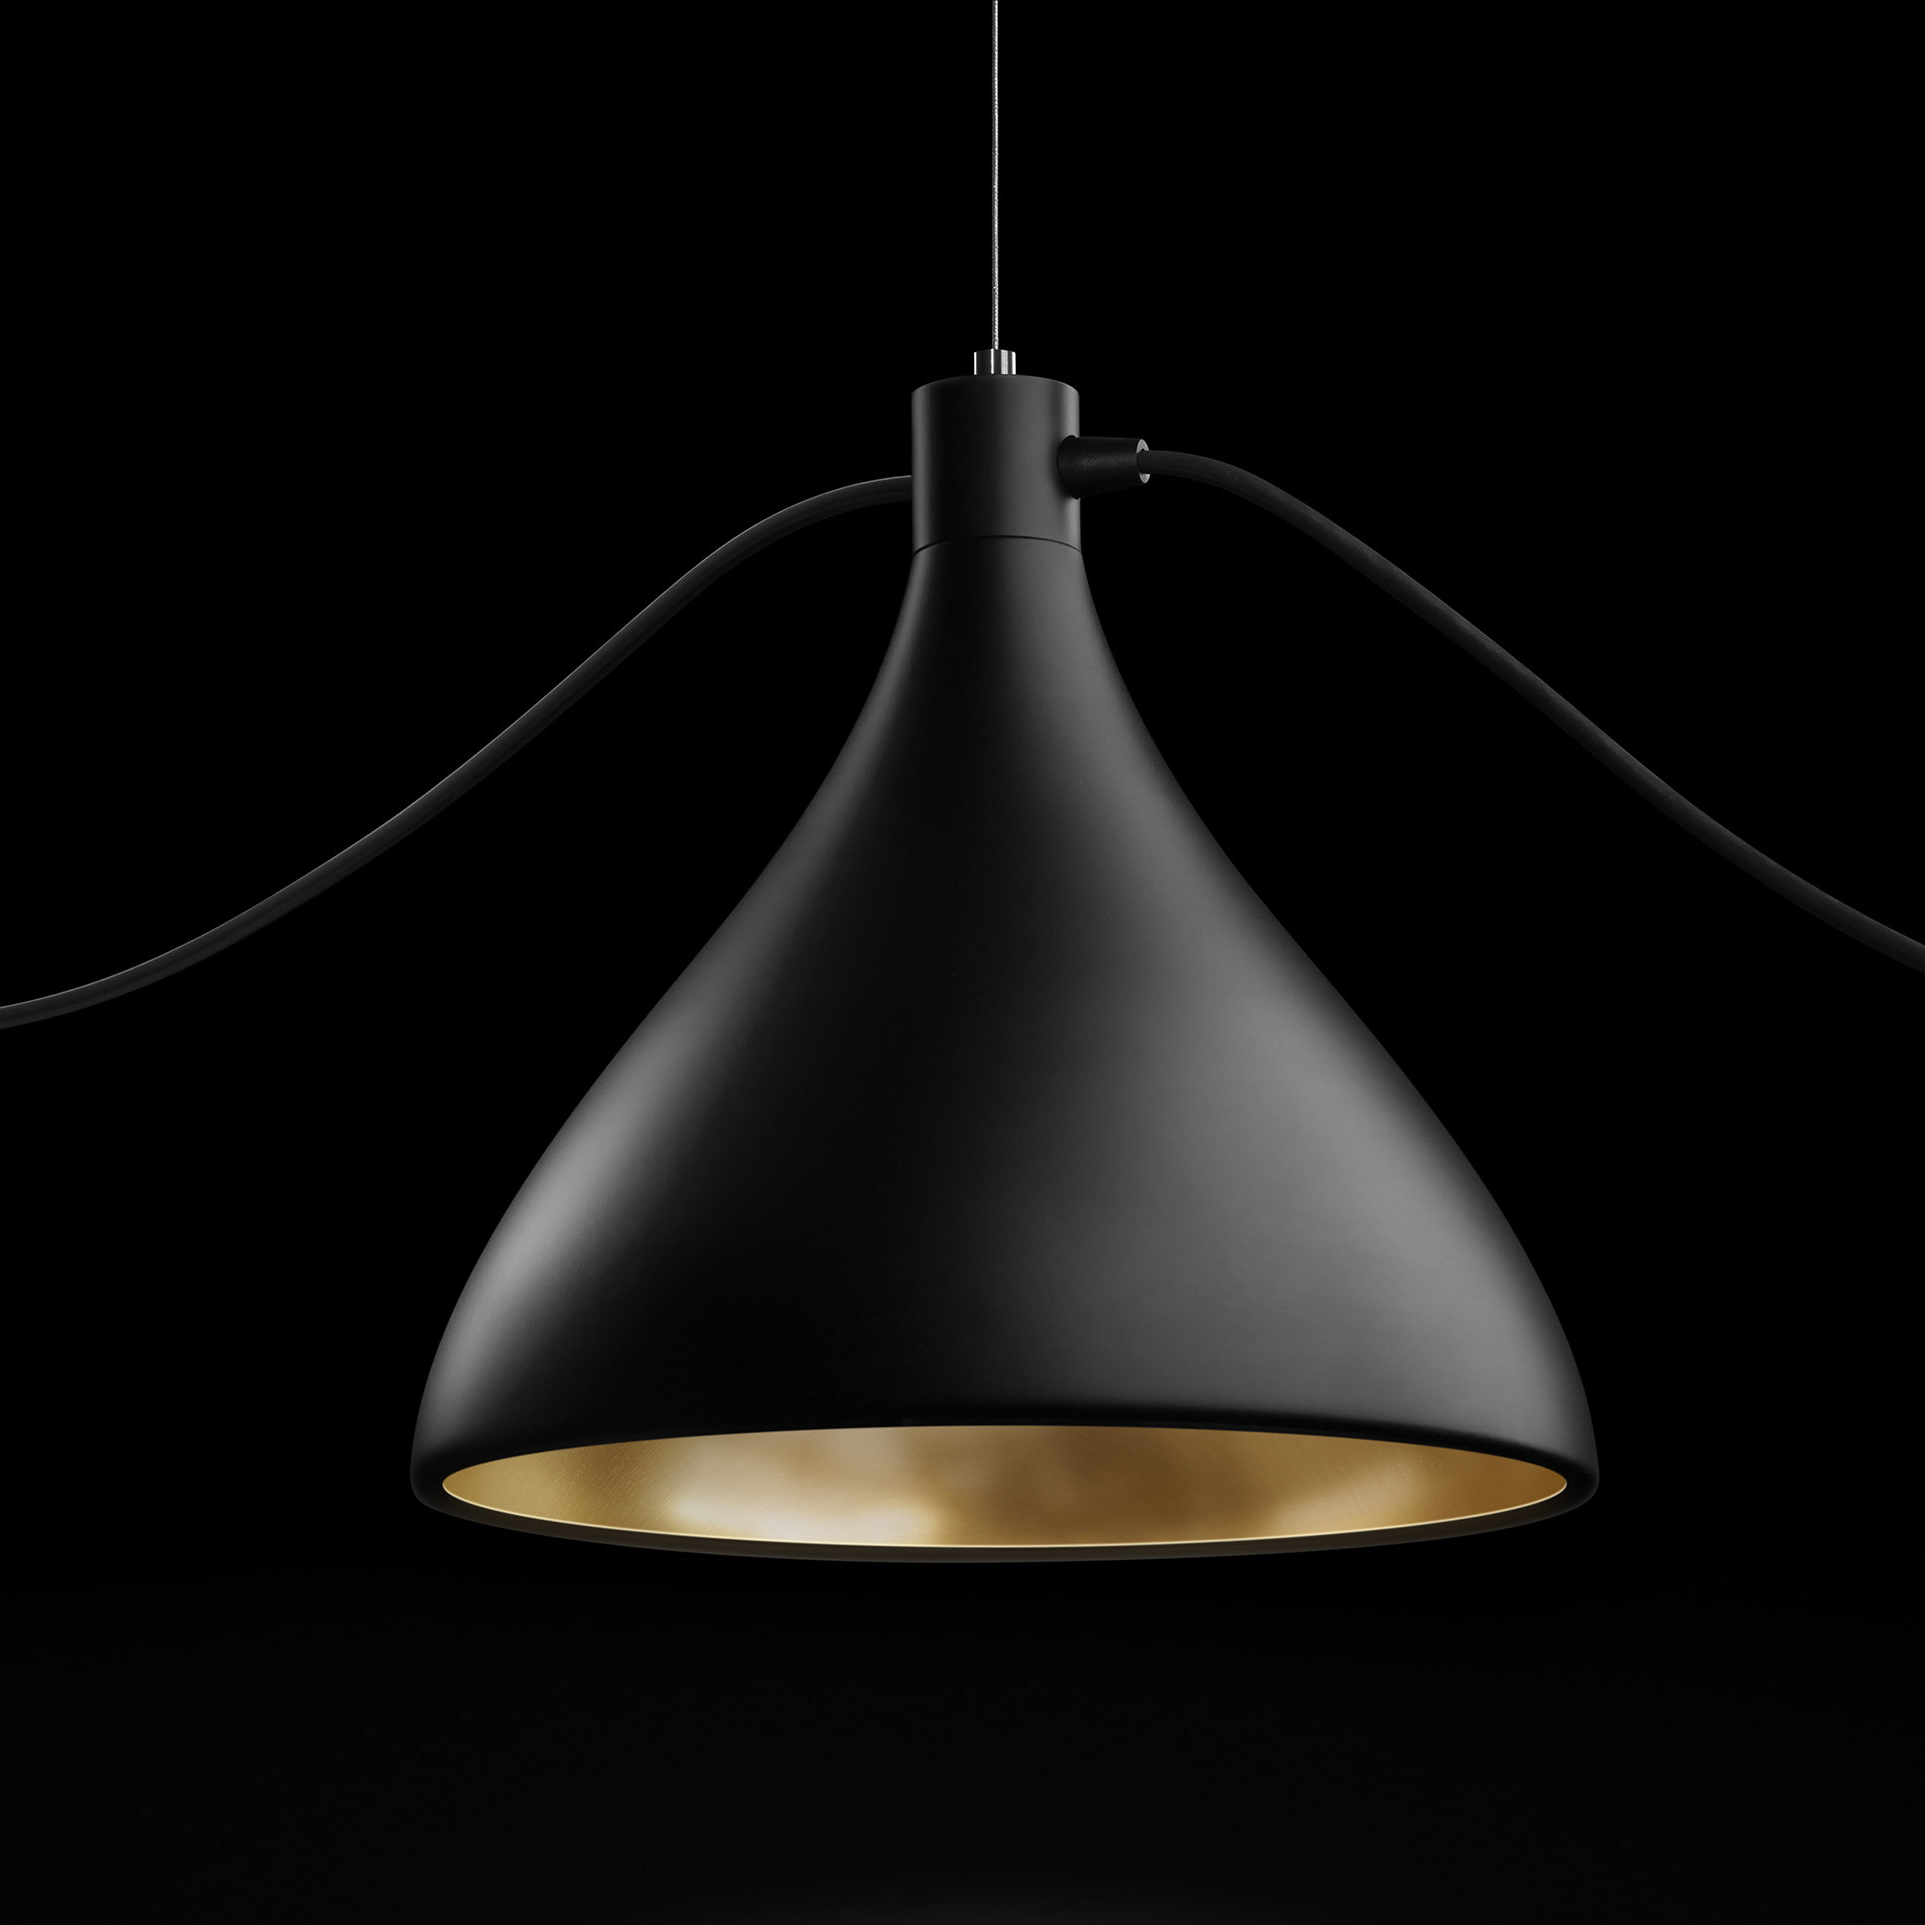 Pablo Designs Swell 1 Light Single Bell Pendant & Reviews With Well Known Ryker 1 Light Single Dome Pendants (Gallery 9 of 20)